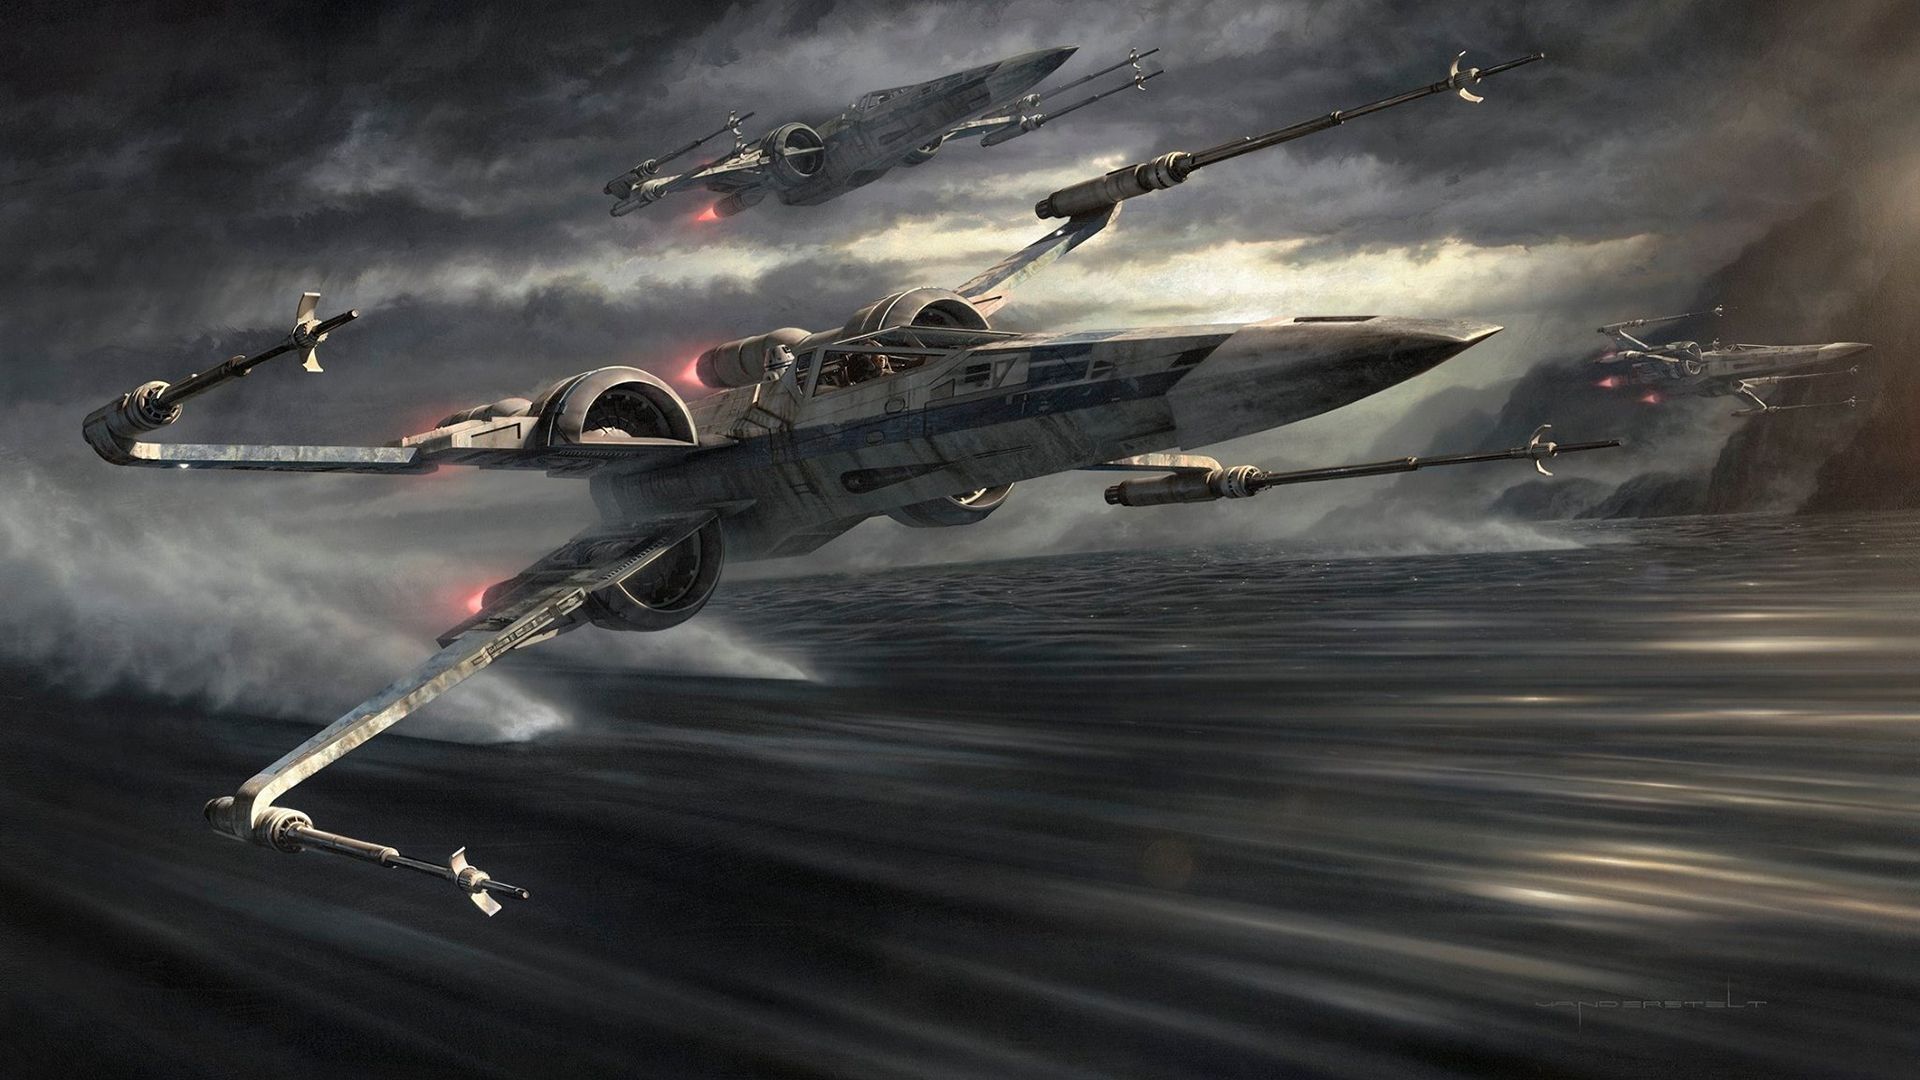 Awesome Star Wars Wallpapers Star Wars Illustration Star Wars Wallpaper Star Wars Ships